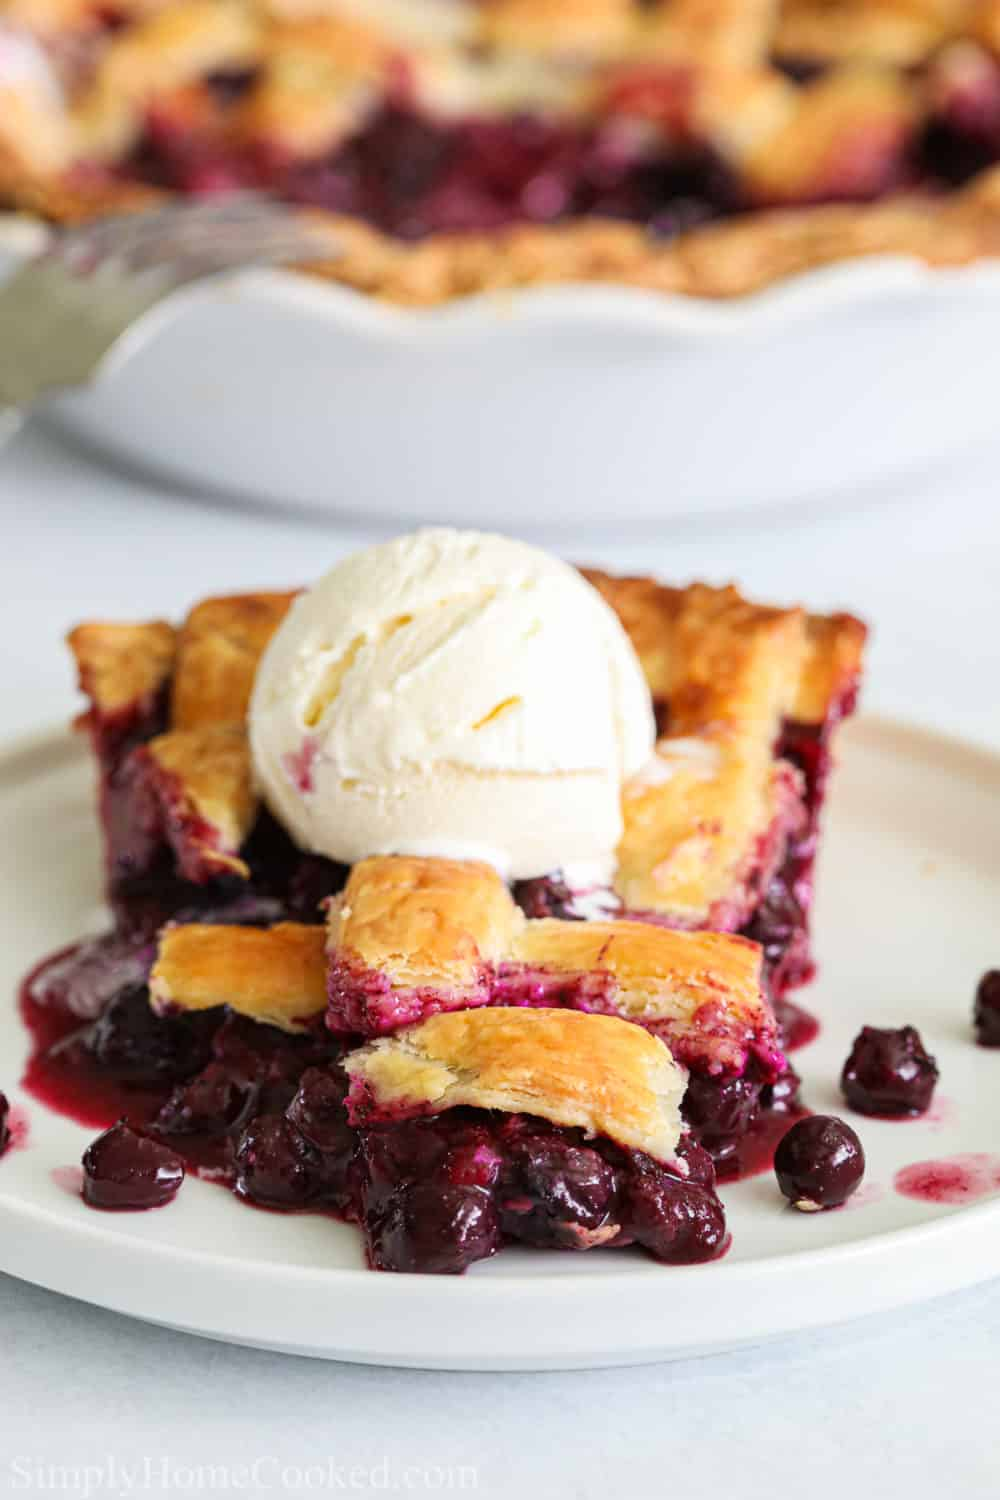 close up image of sliced homemade blueberry pie with a lattice top and vanilla ice cream on top